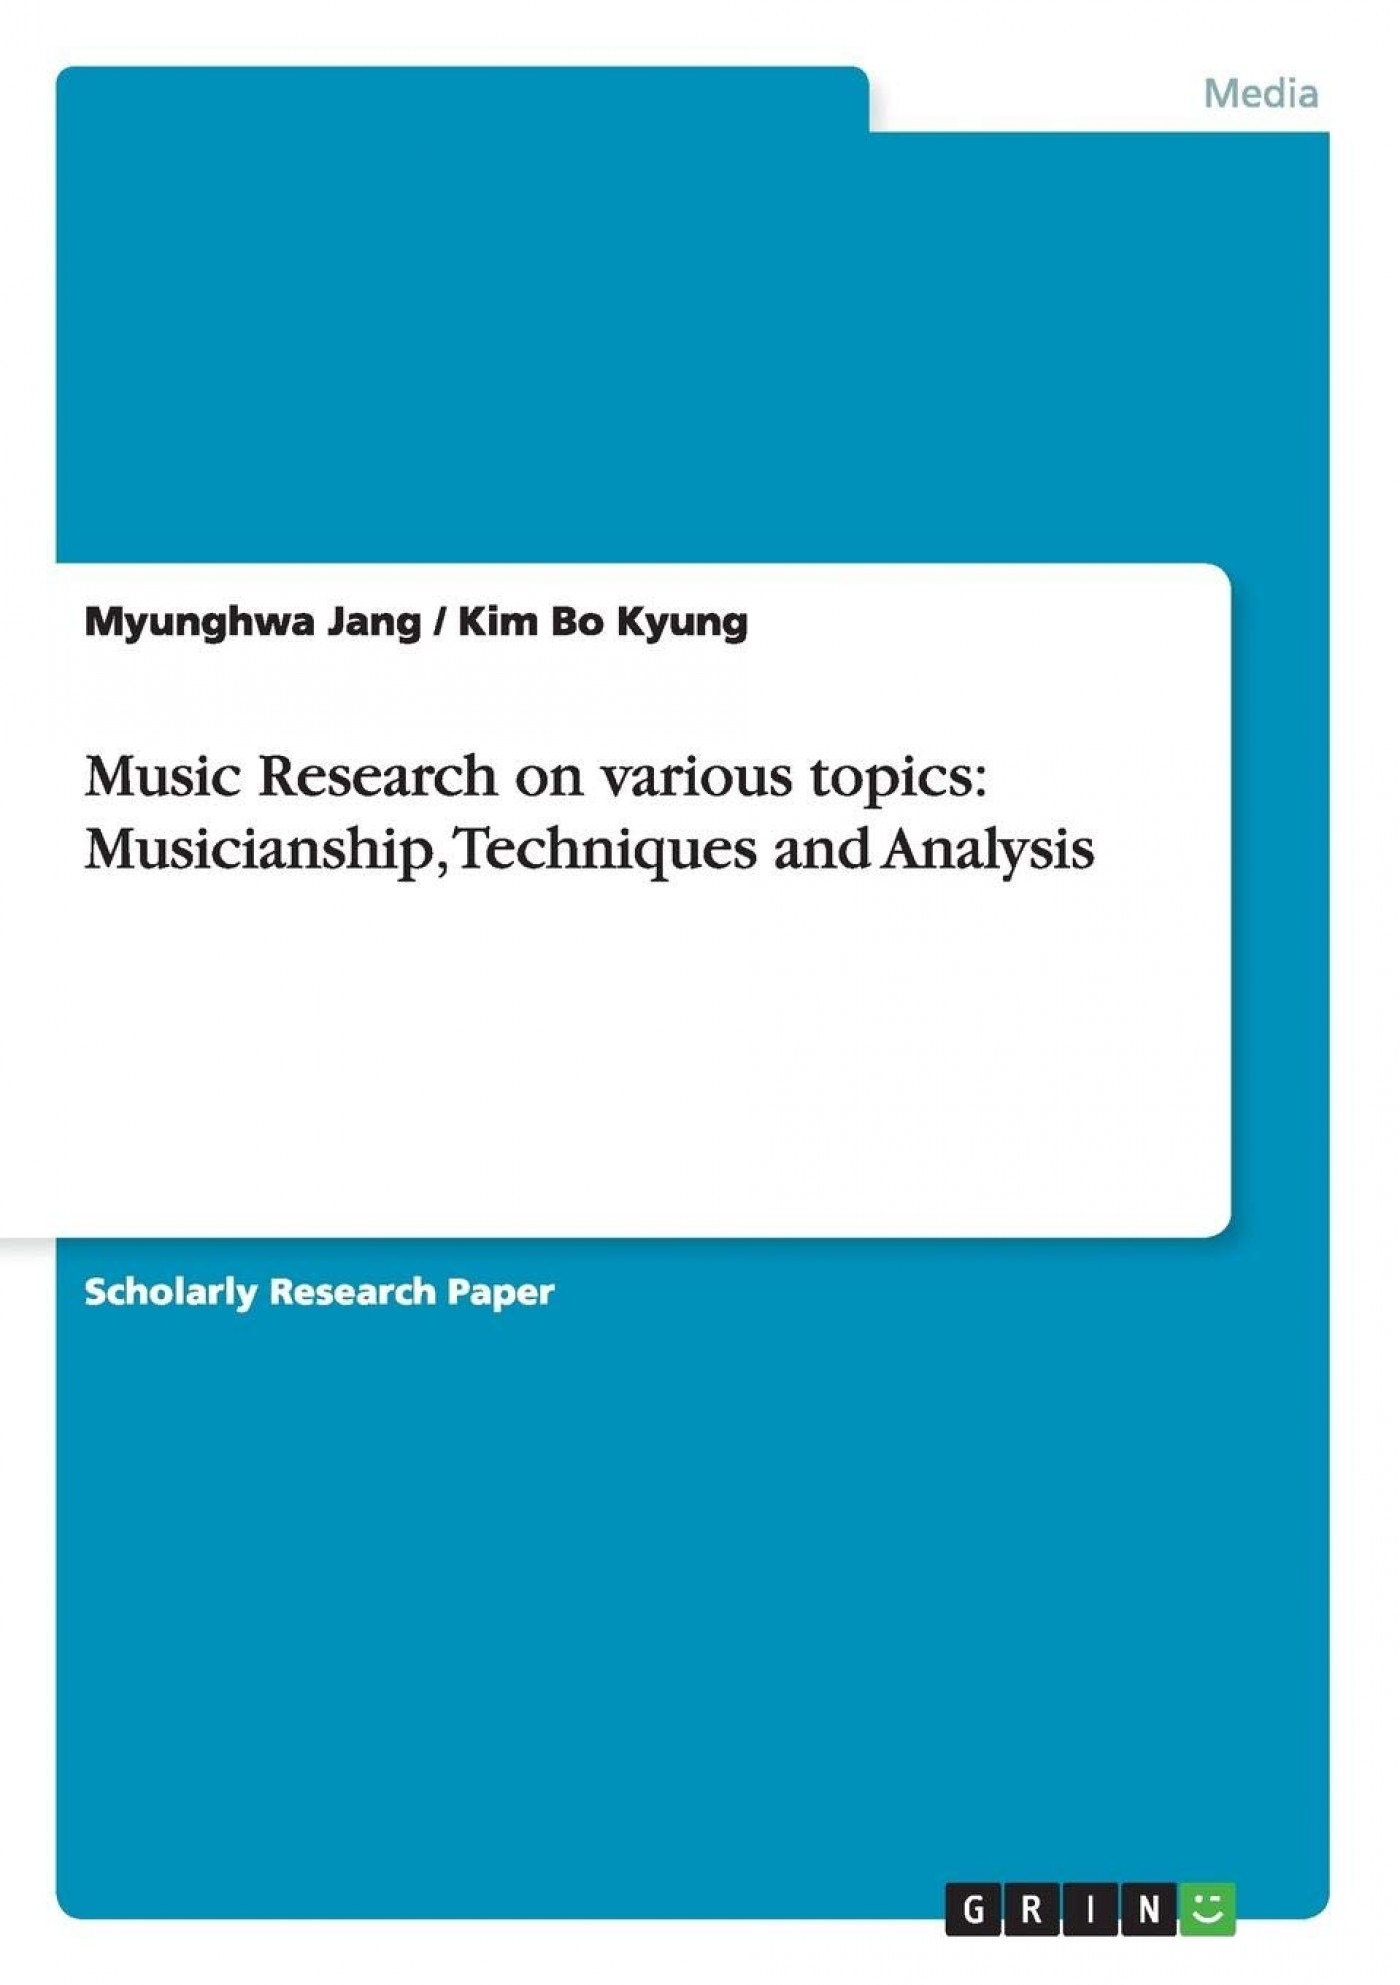 019 Popular Music Research Paper Topics Fantastic Related 1400